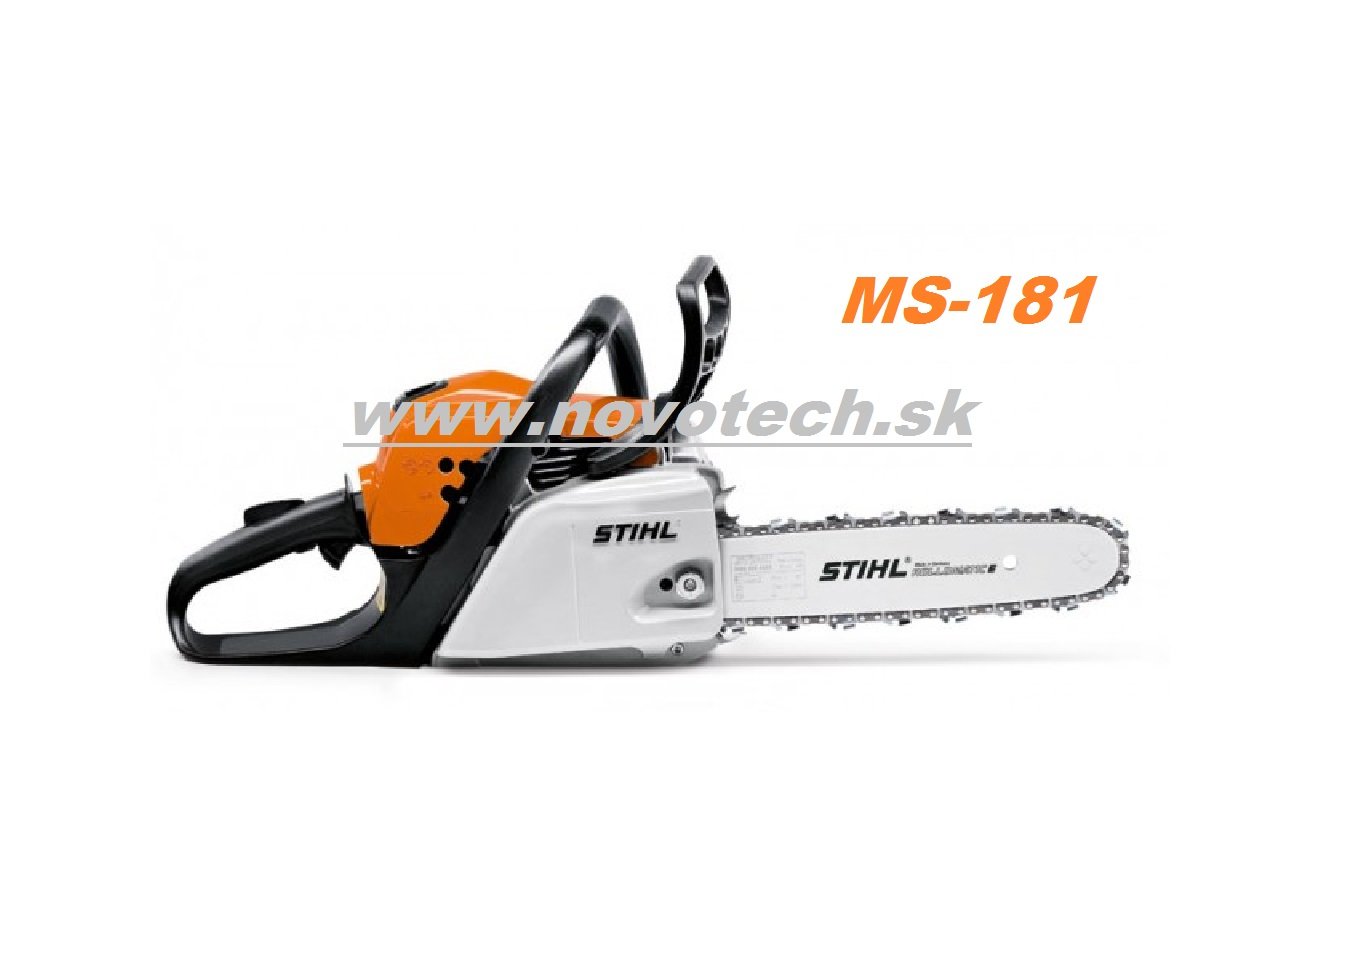 motorov p ly stihl ms 181 zahradn technika novotech. Black Bedroom Furniture Sets. Home Design Ideas